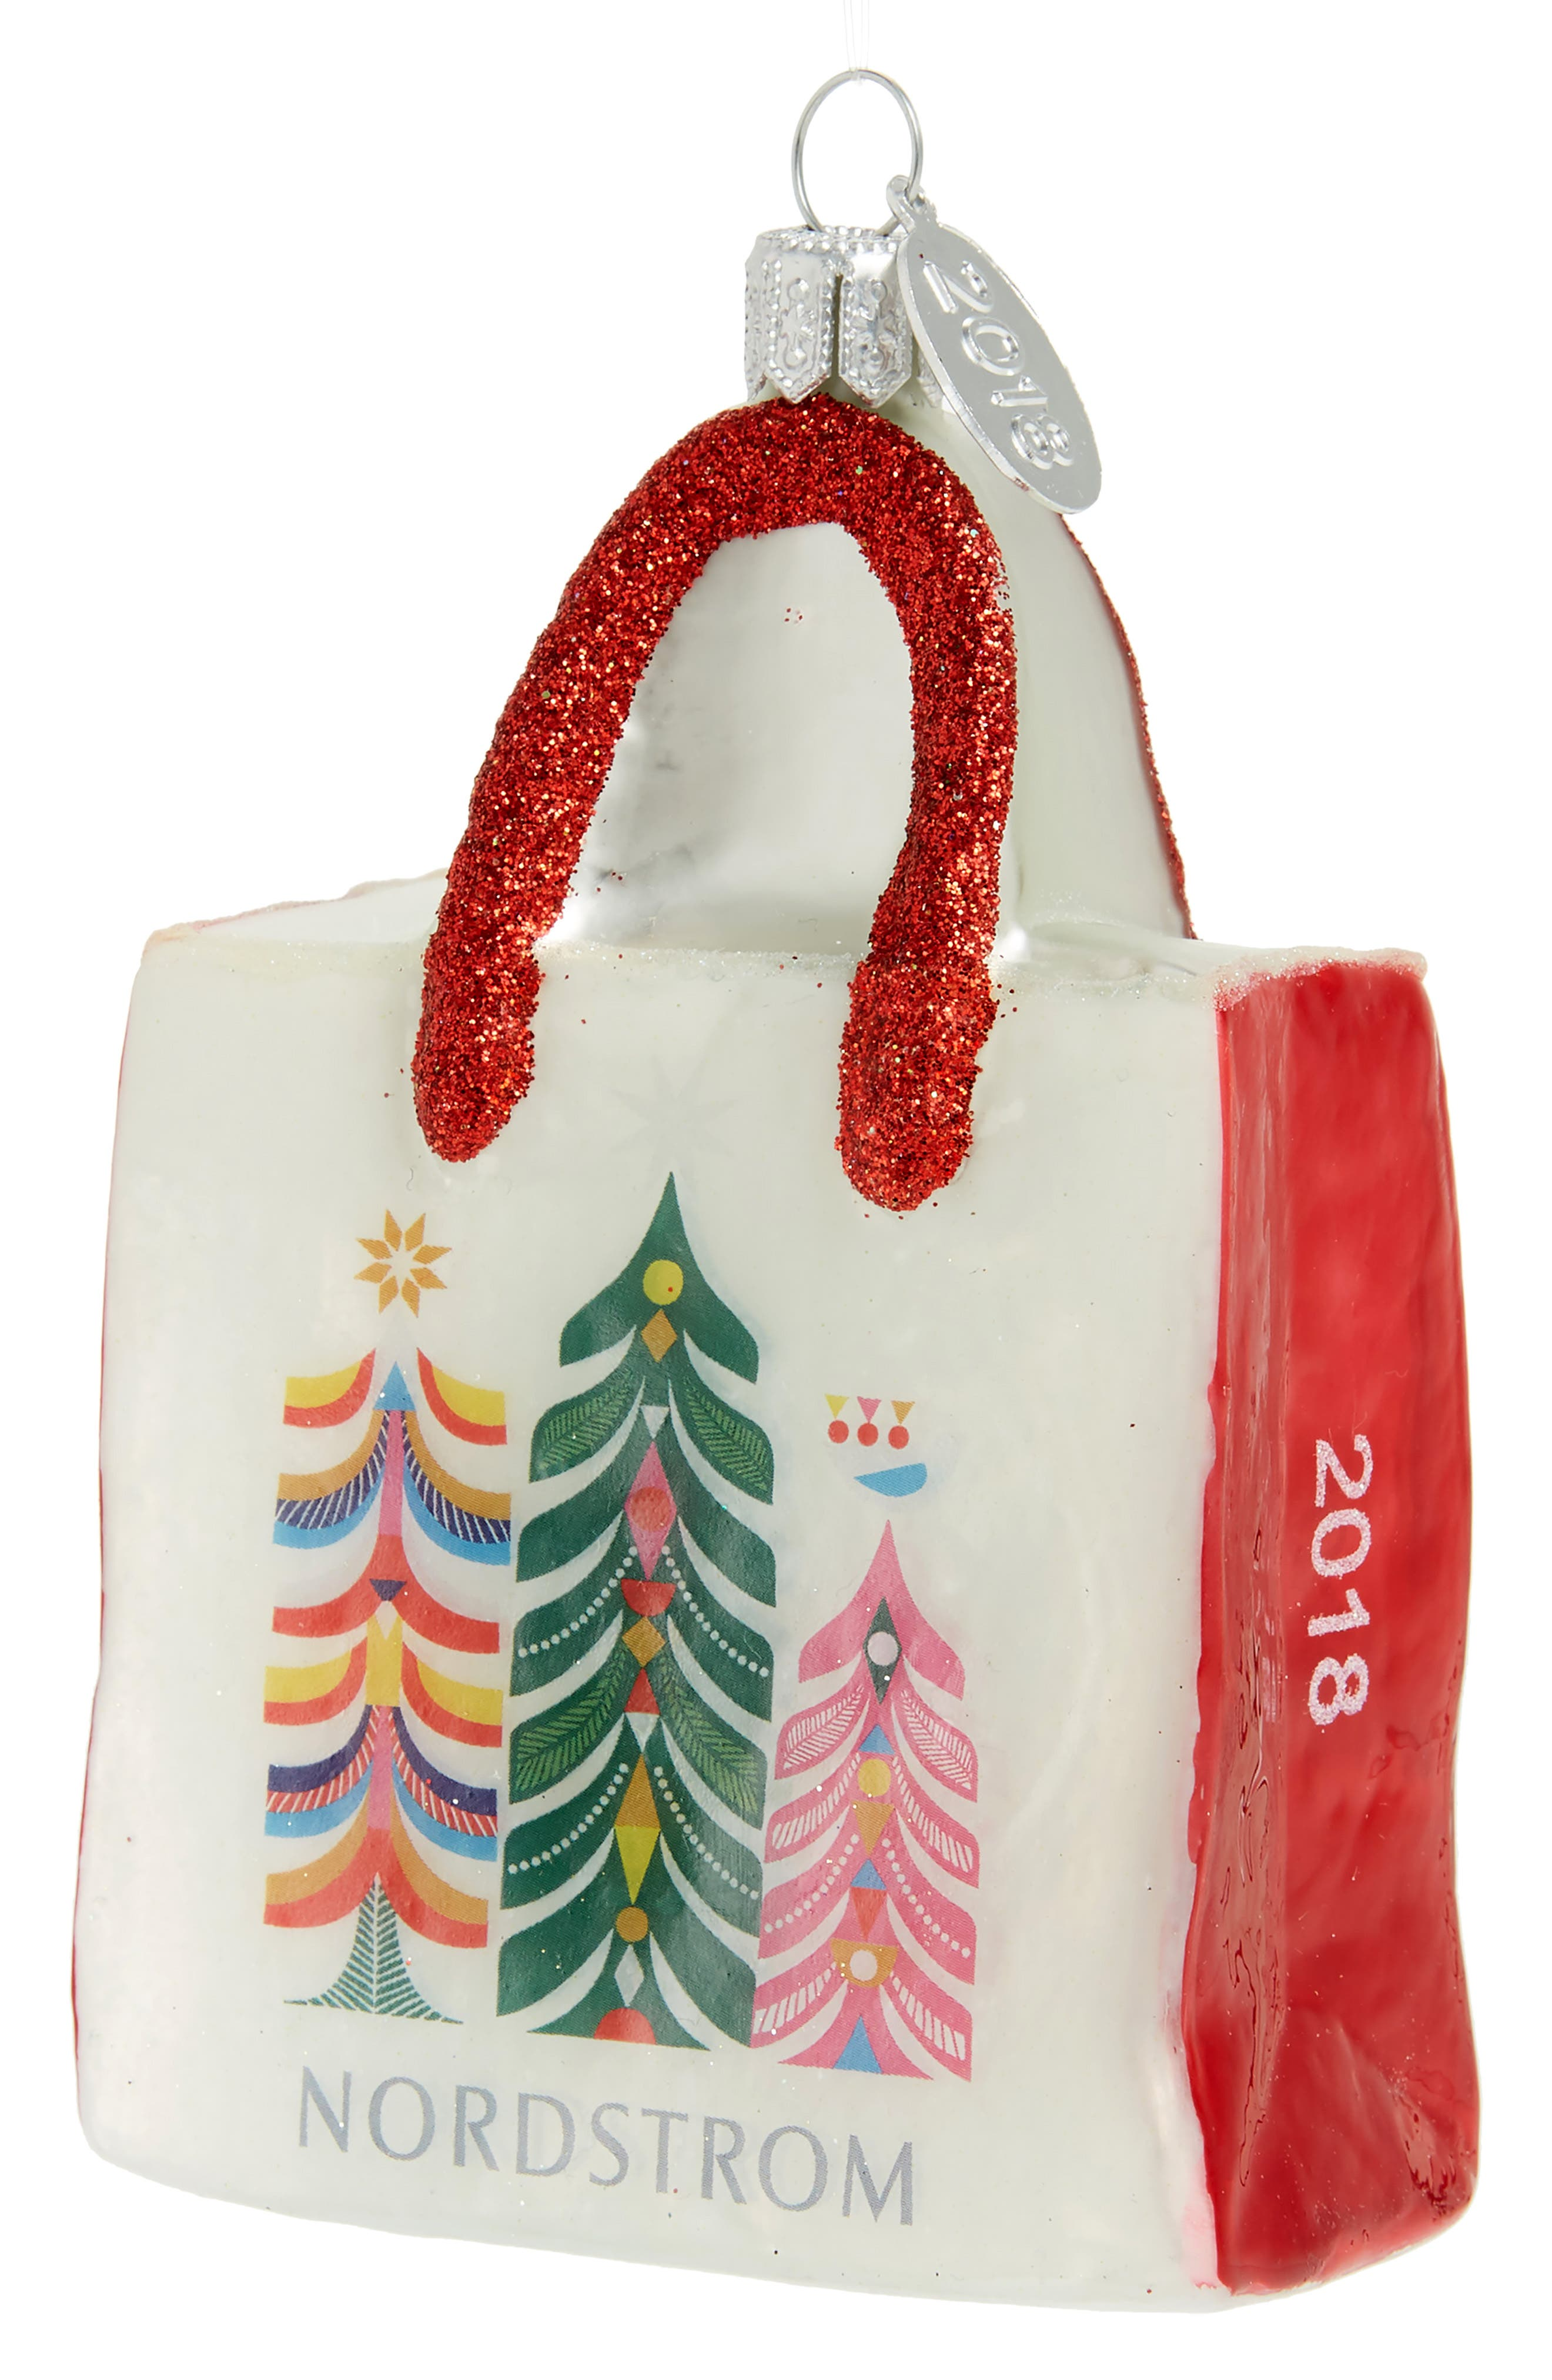 Nordstrom Shopping Bag 2018 Ornament,                         Main,                         color, 100